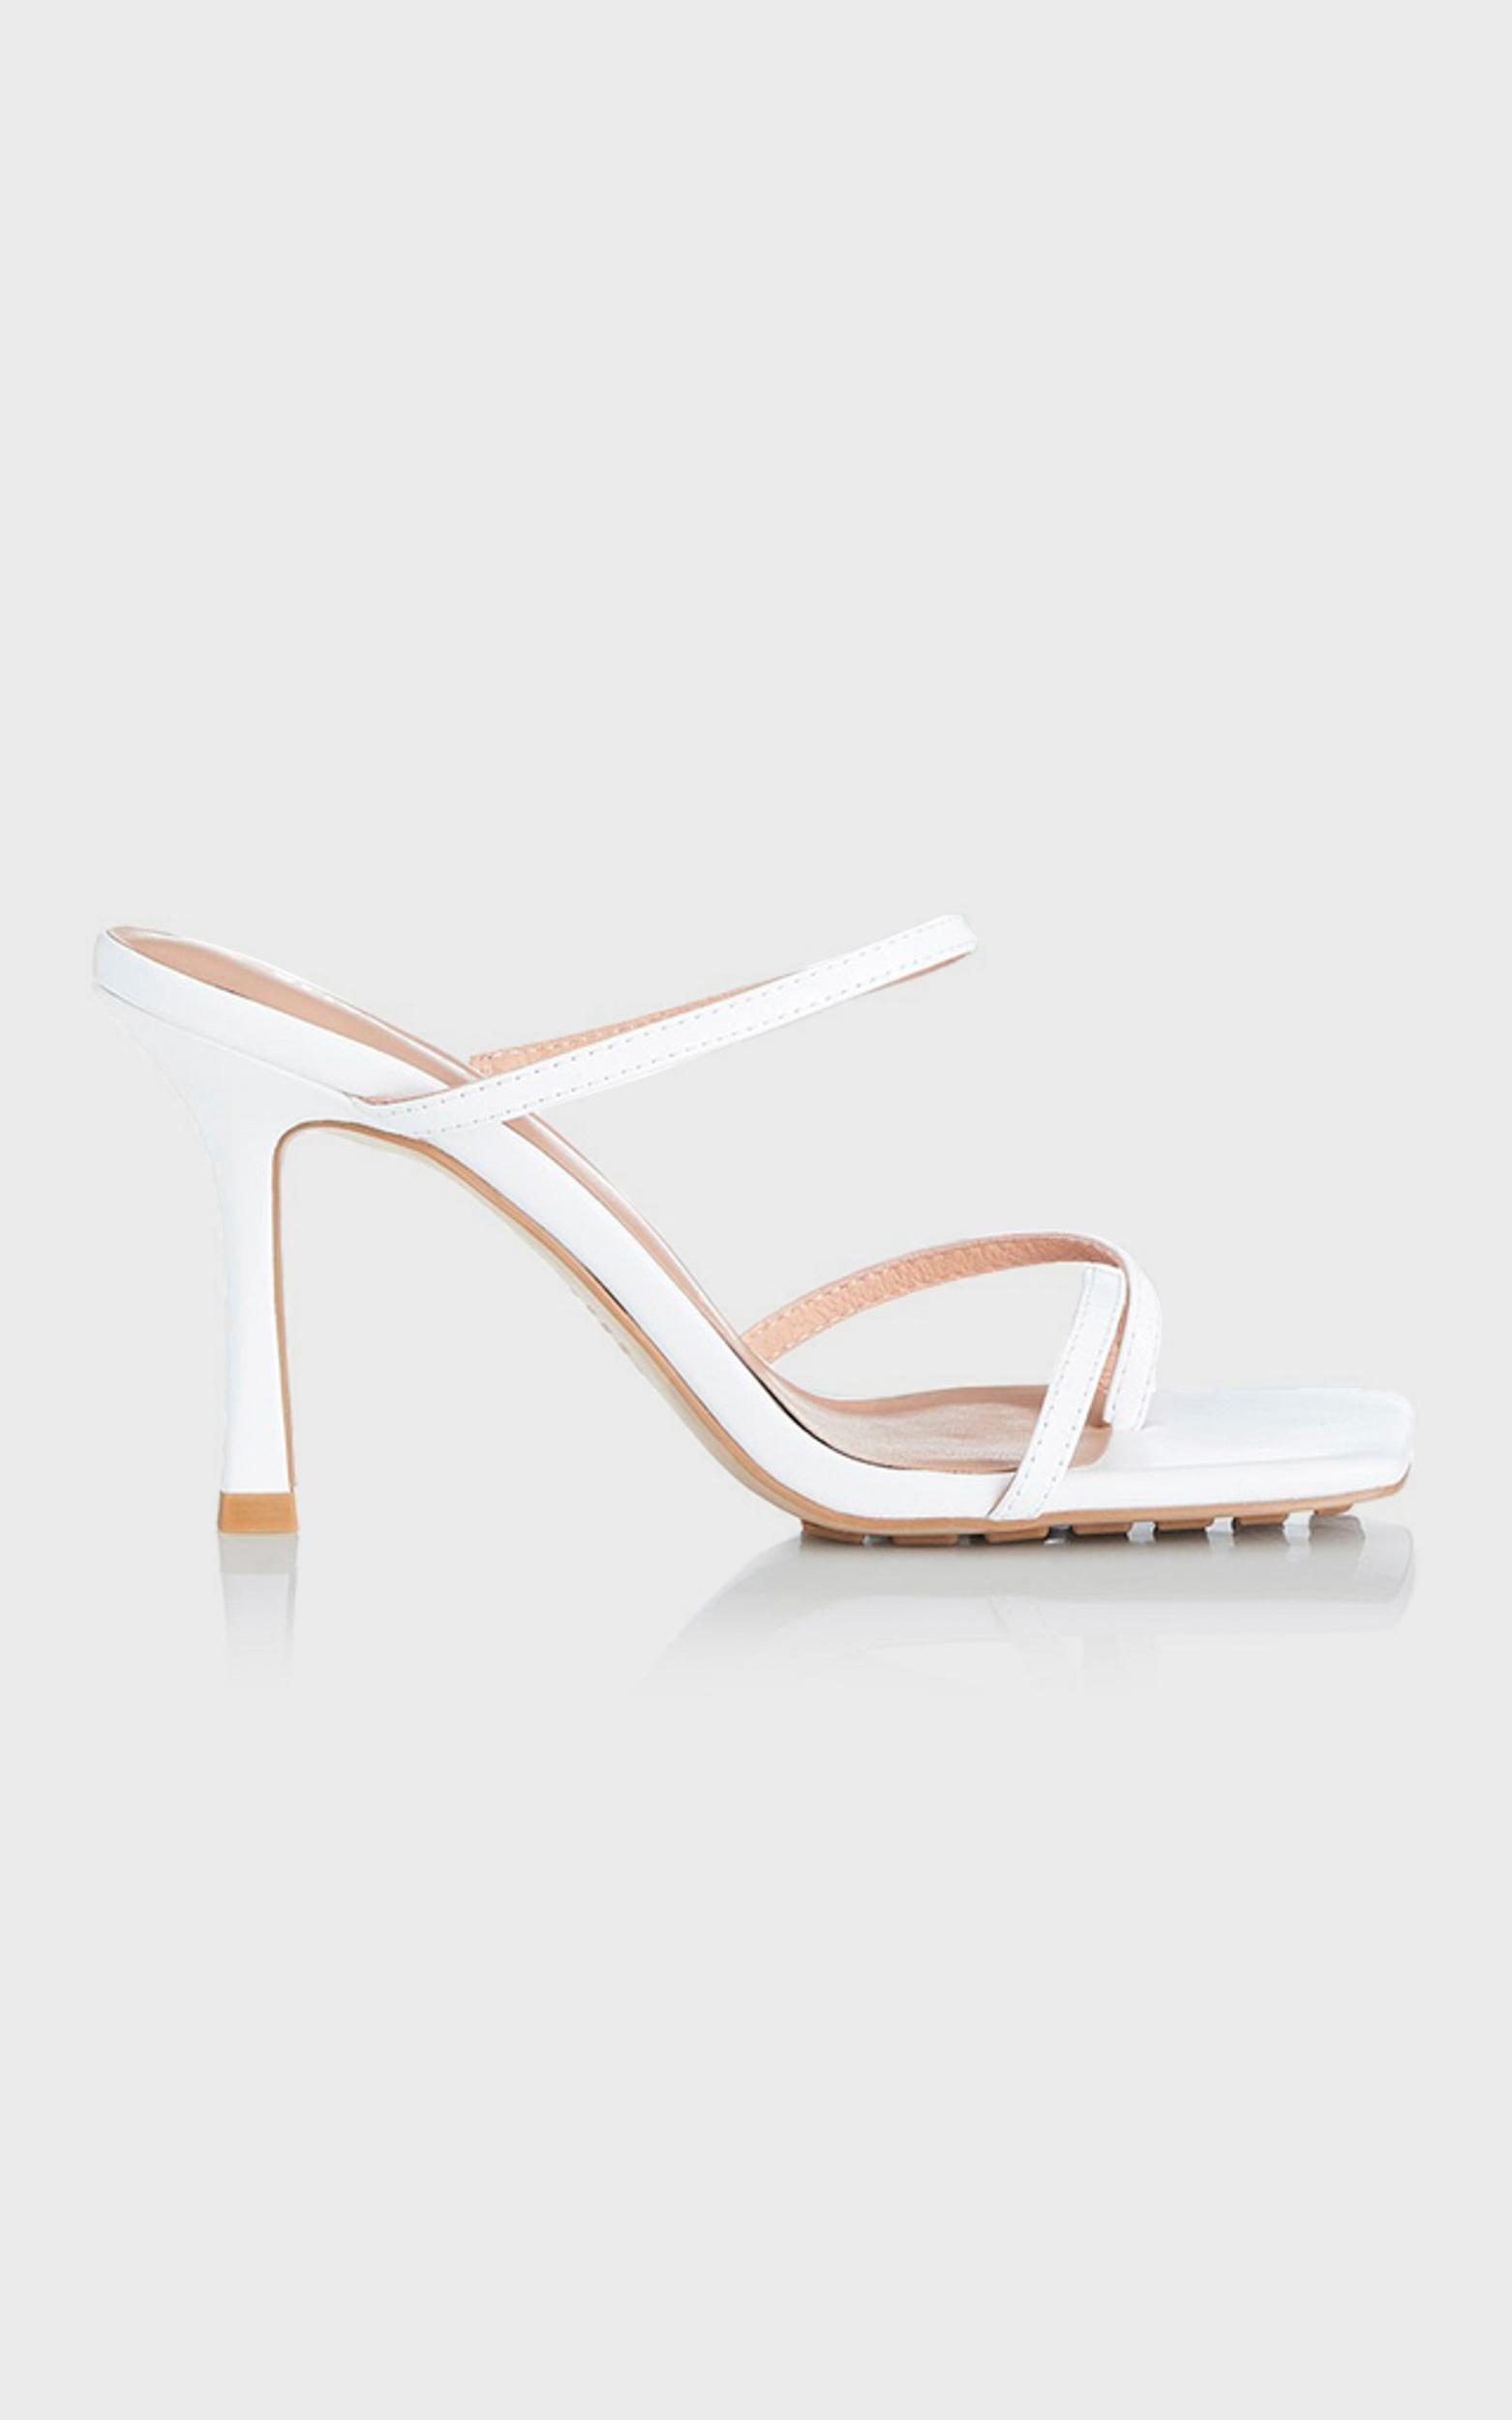 Alias Mae - Lexis Heel in White Kid Leather - 10.5, WHT1, hi-res image number null